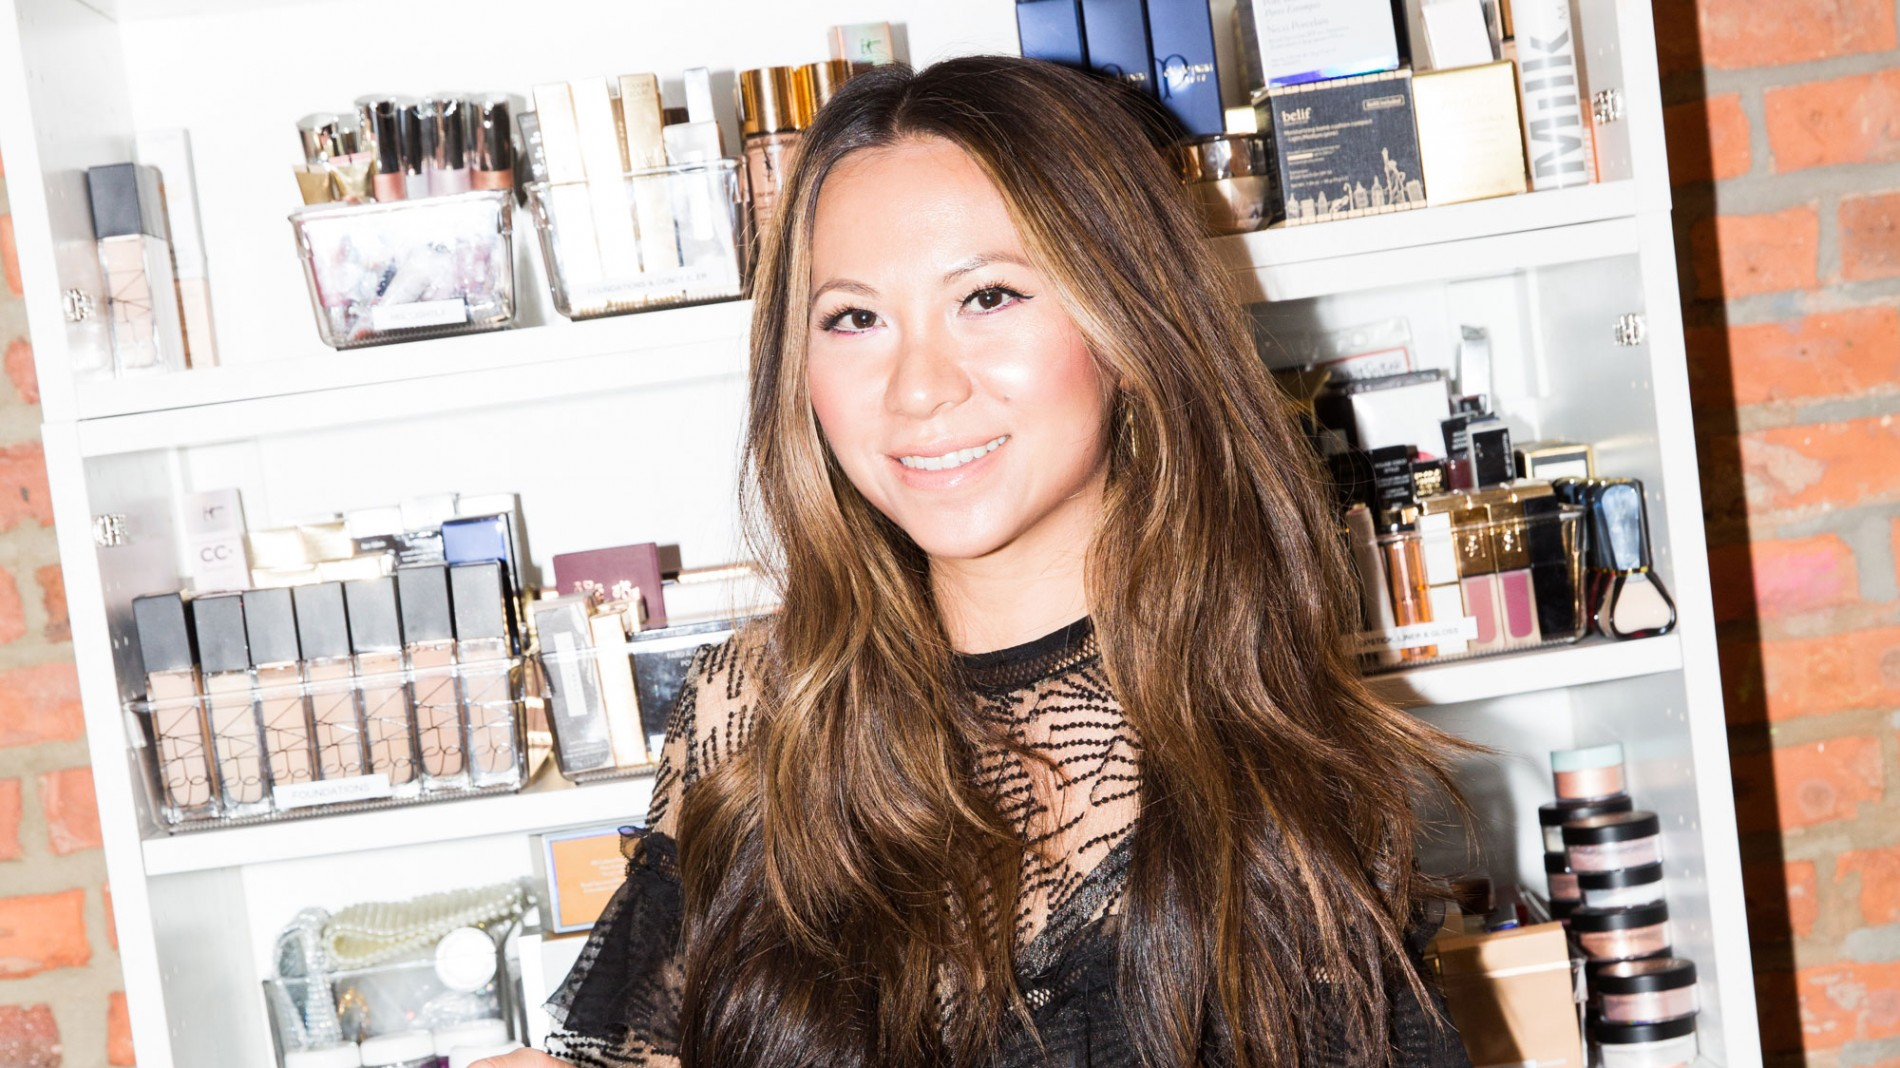 Domino - 12 Cult Beauty Products Experts Swear By That You've Never Heard Of